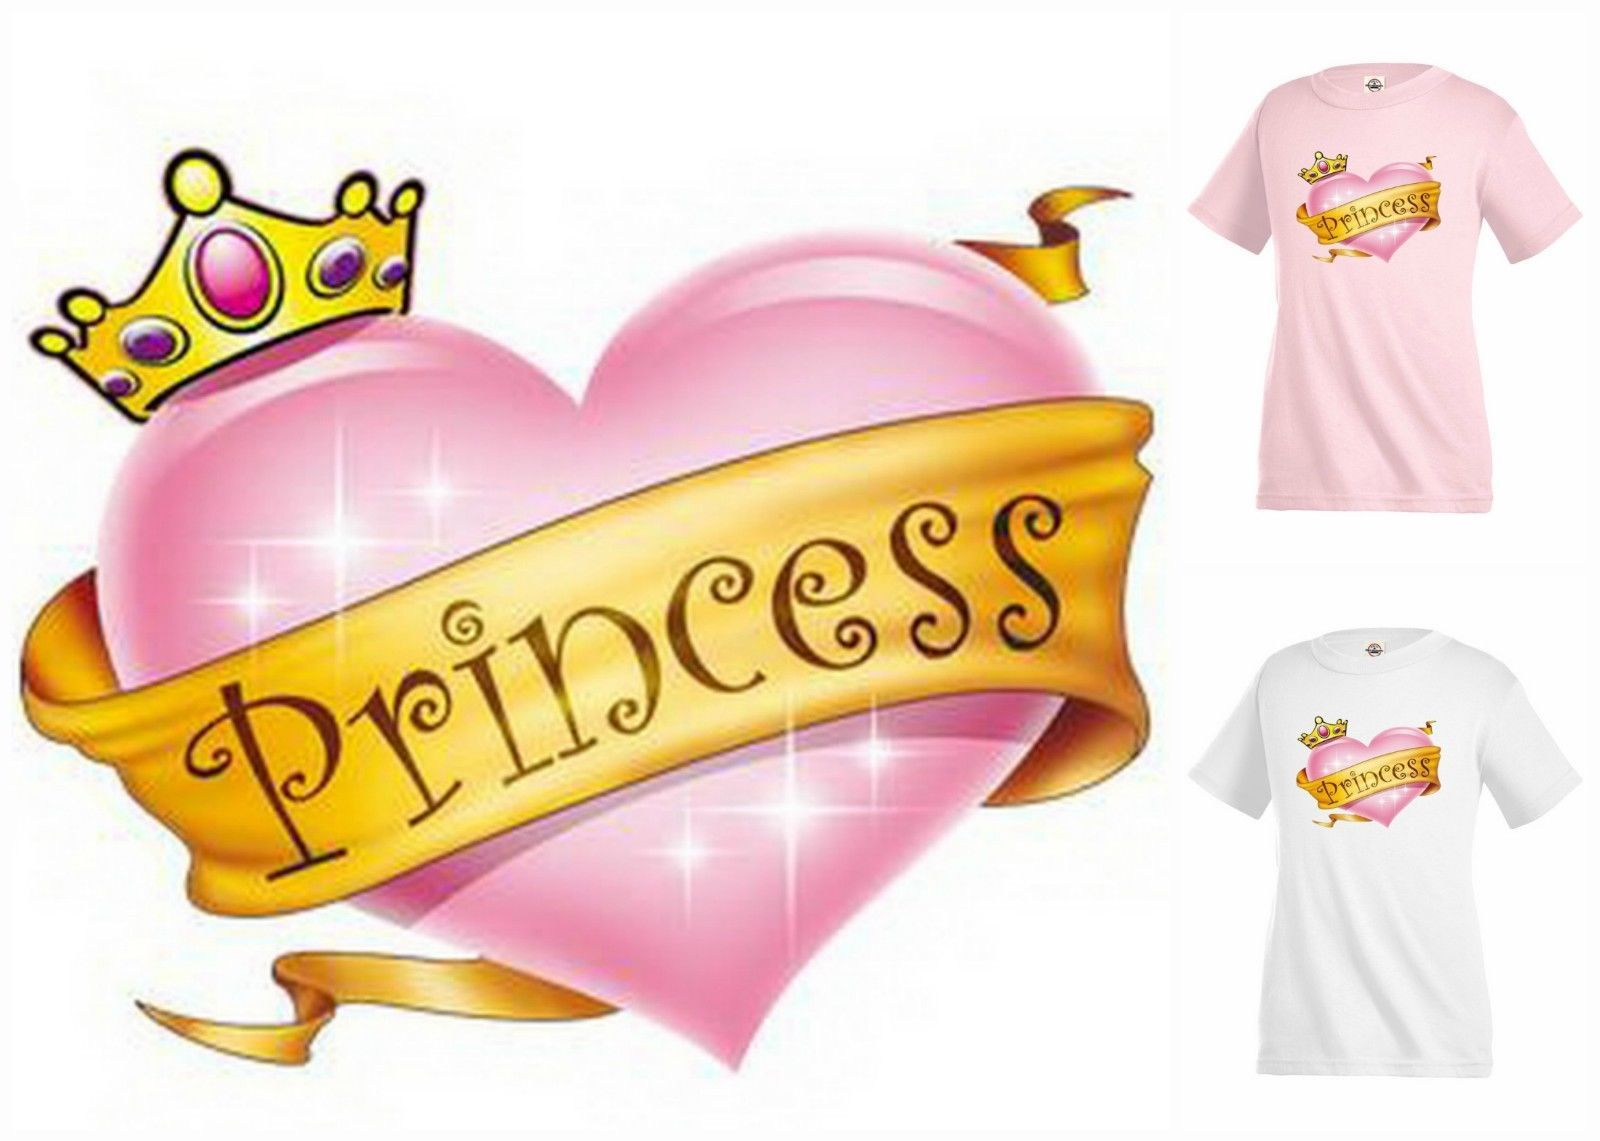 PRINCESS Crown Heart pink T-shirt Kid's Children Unisex Girl Funny KP244